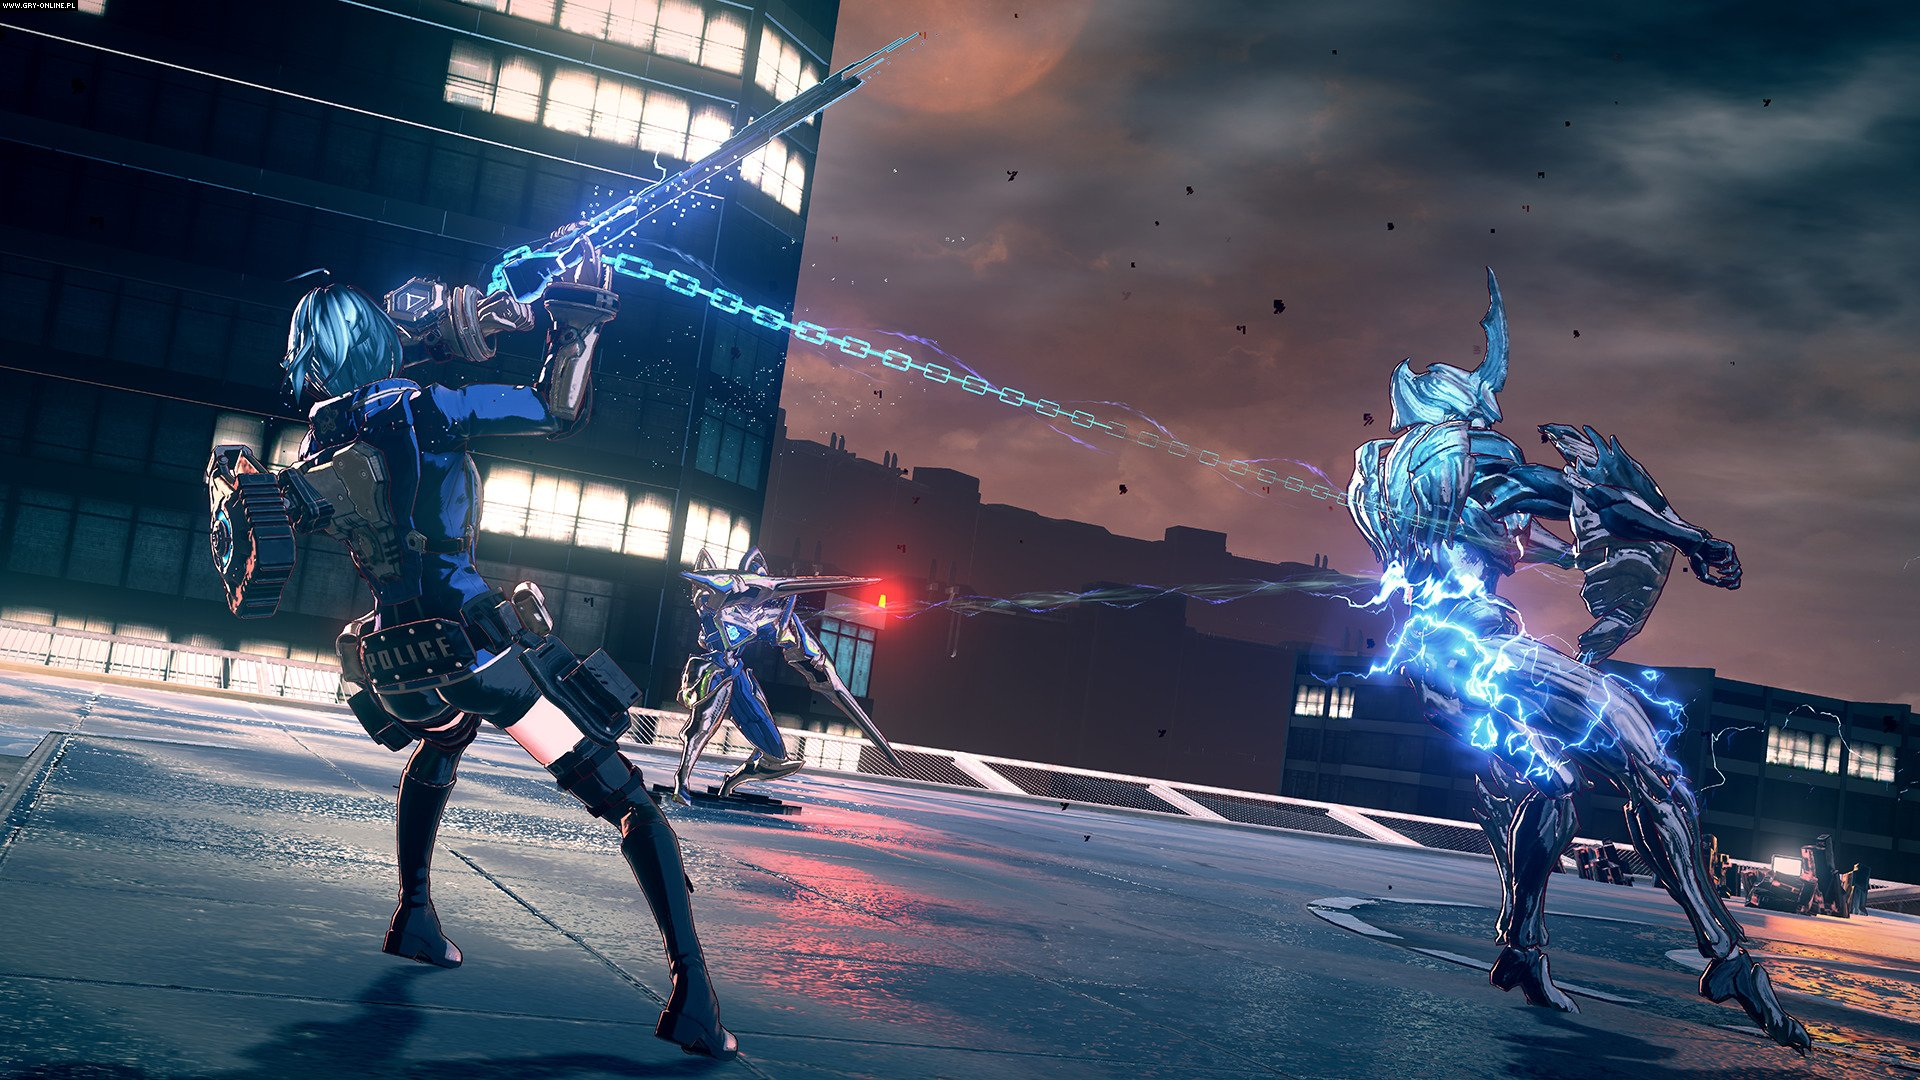 Astral Chain Switch Games Image 13/55, PlatinumGames, Nintendo